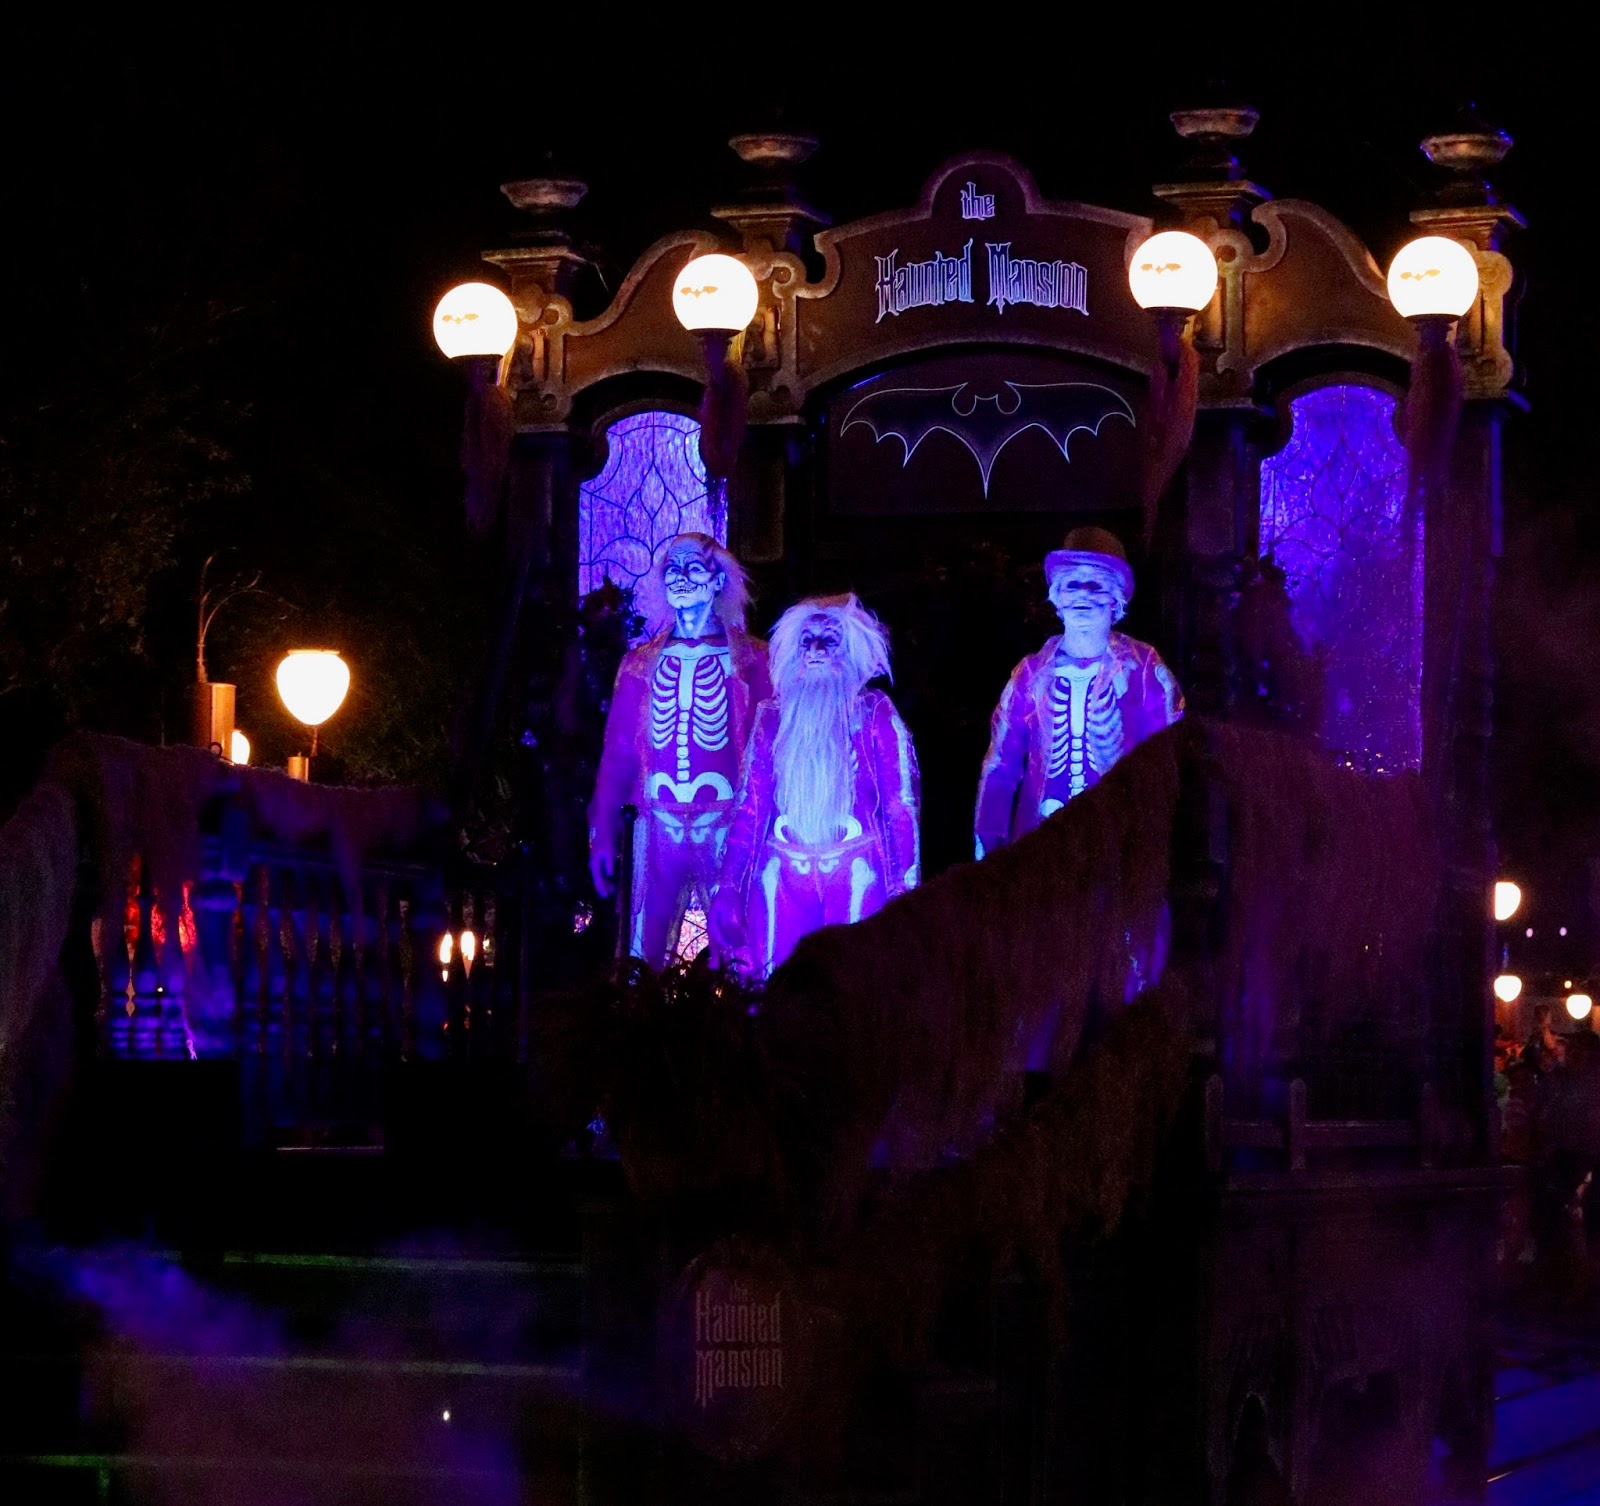 Micky's-Not-So-Scary-Halloween-Party-Boo-To-You-Parade-Haunted-Mansion-Hitchhiking-ghosts-Magic-Kingdom-Disney-World